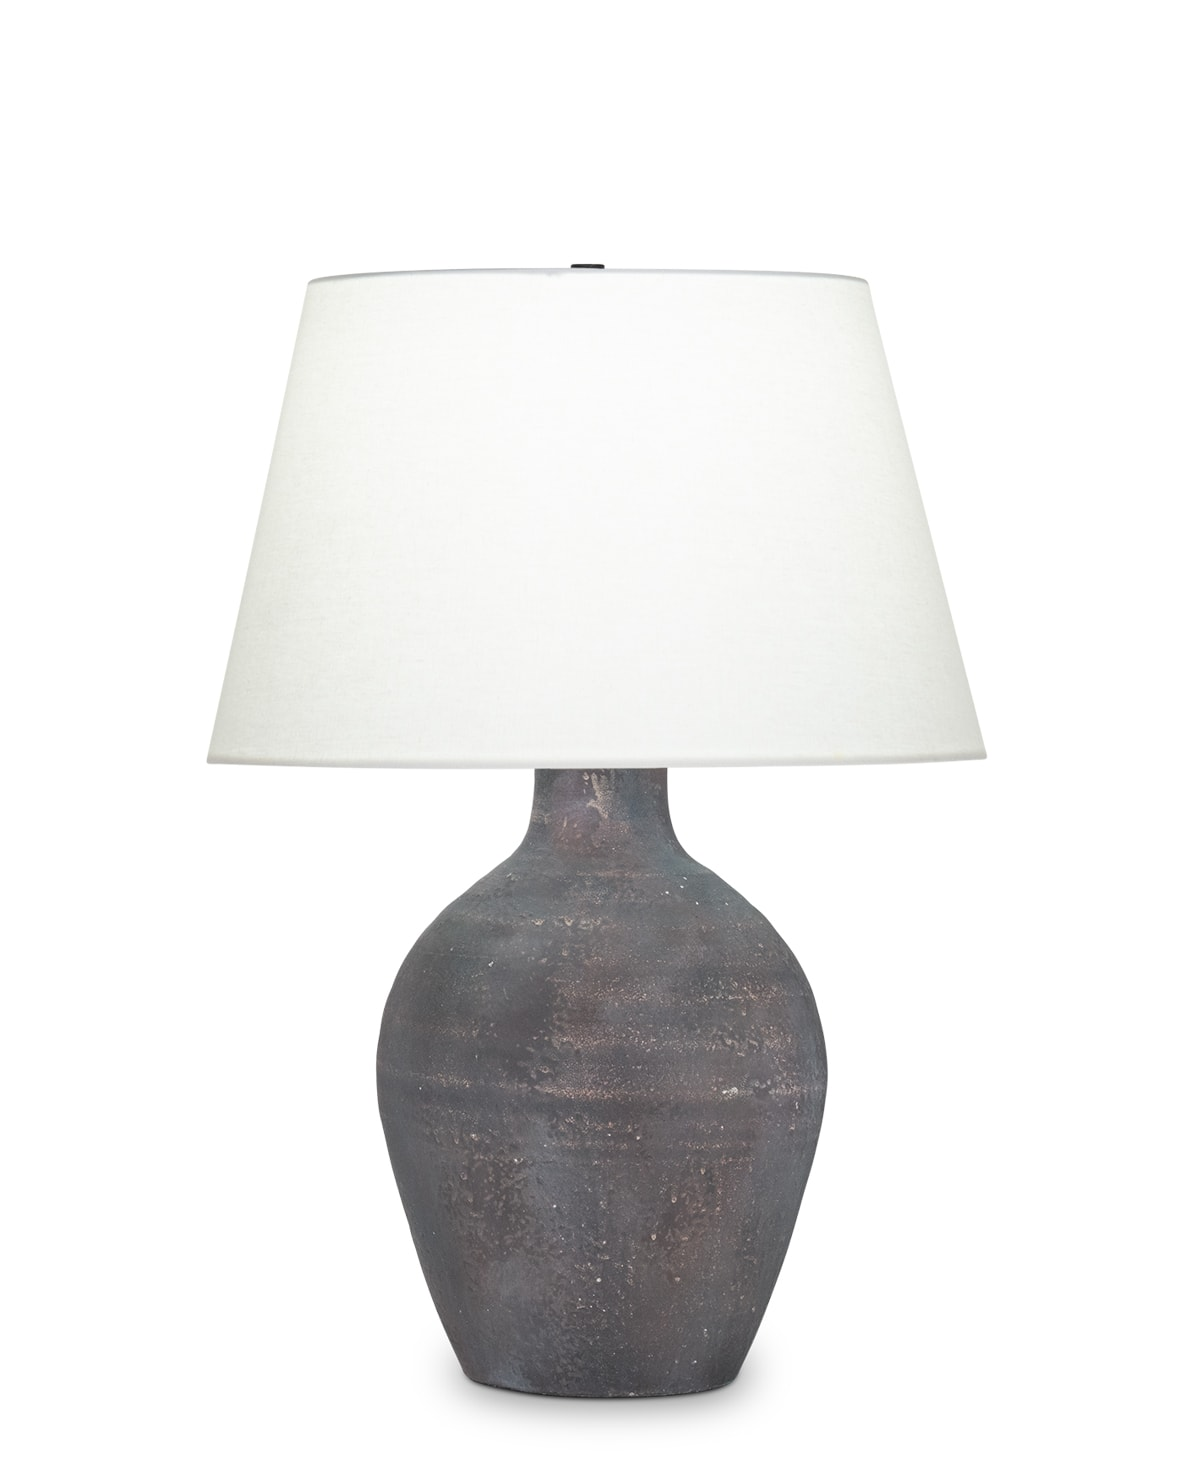 FlowDecor Theo Table Lamp in ceramic with rustic brown and off-white linen tapered drum shade (# 4507)